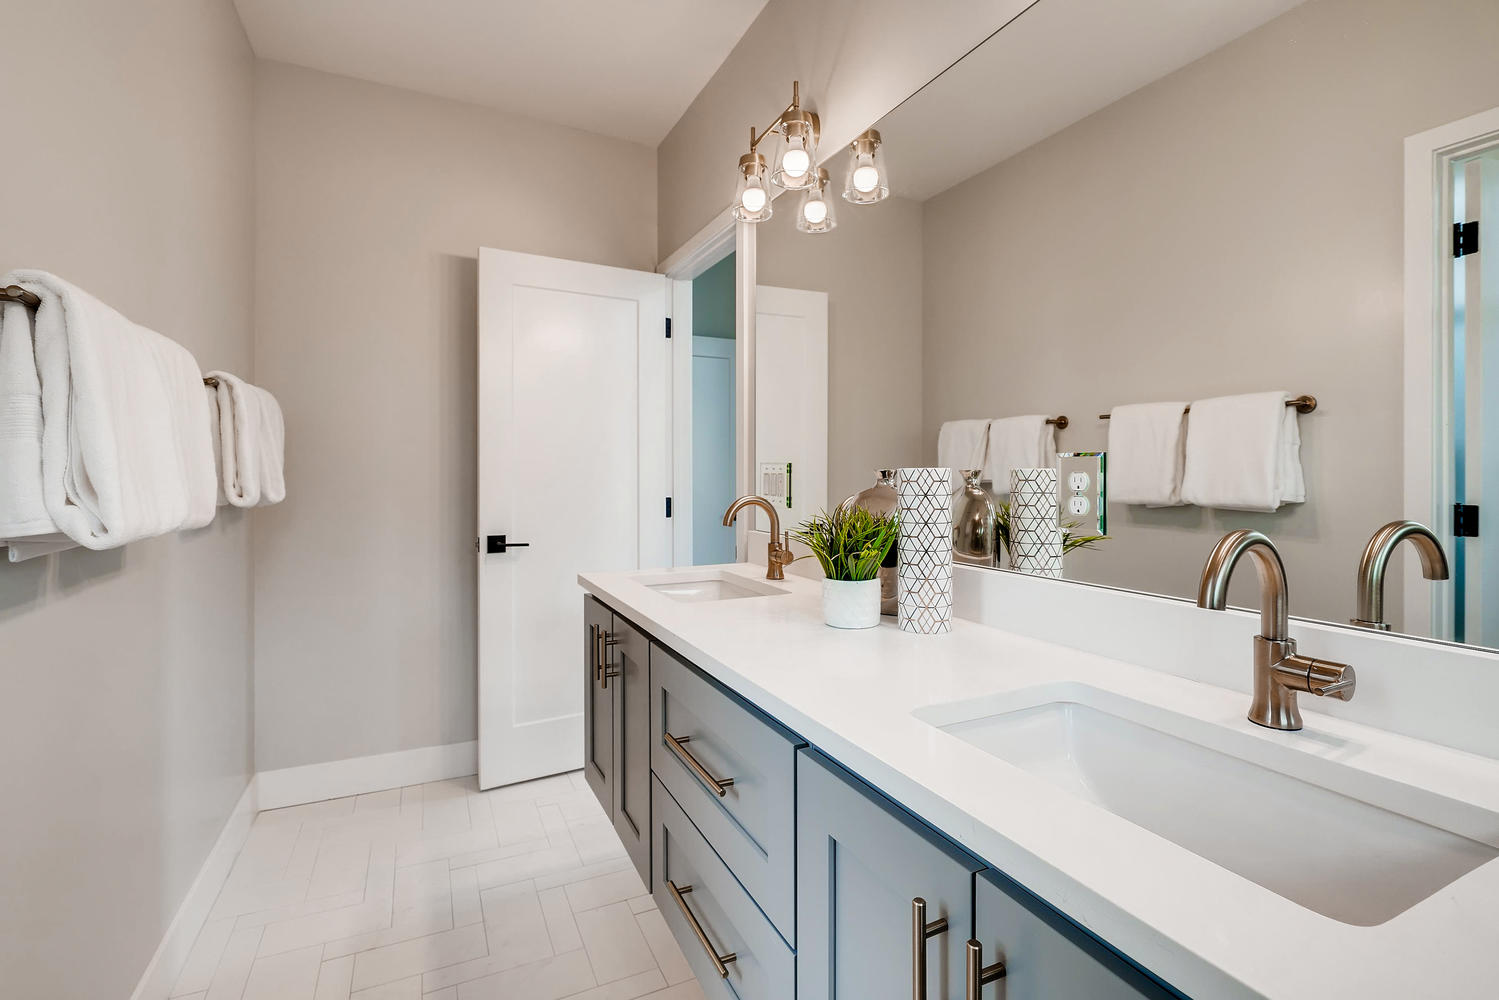 4432 Tennyson Unit 1 Denver CO-large-014-016-2nd Floor Master Bathroom-1499x1000-72dpi